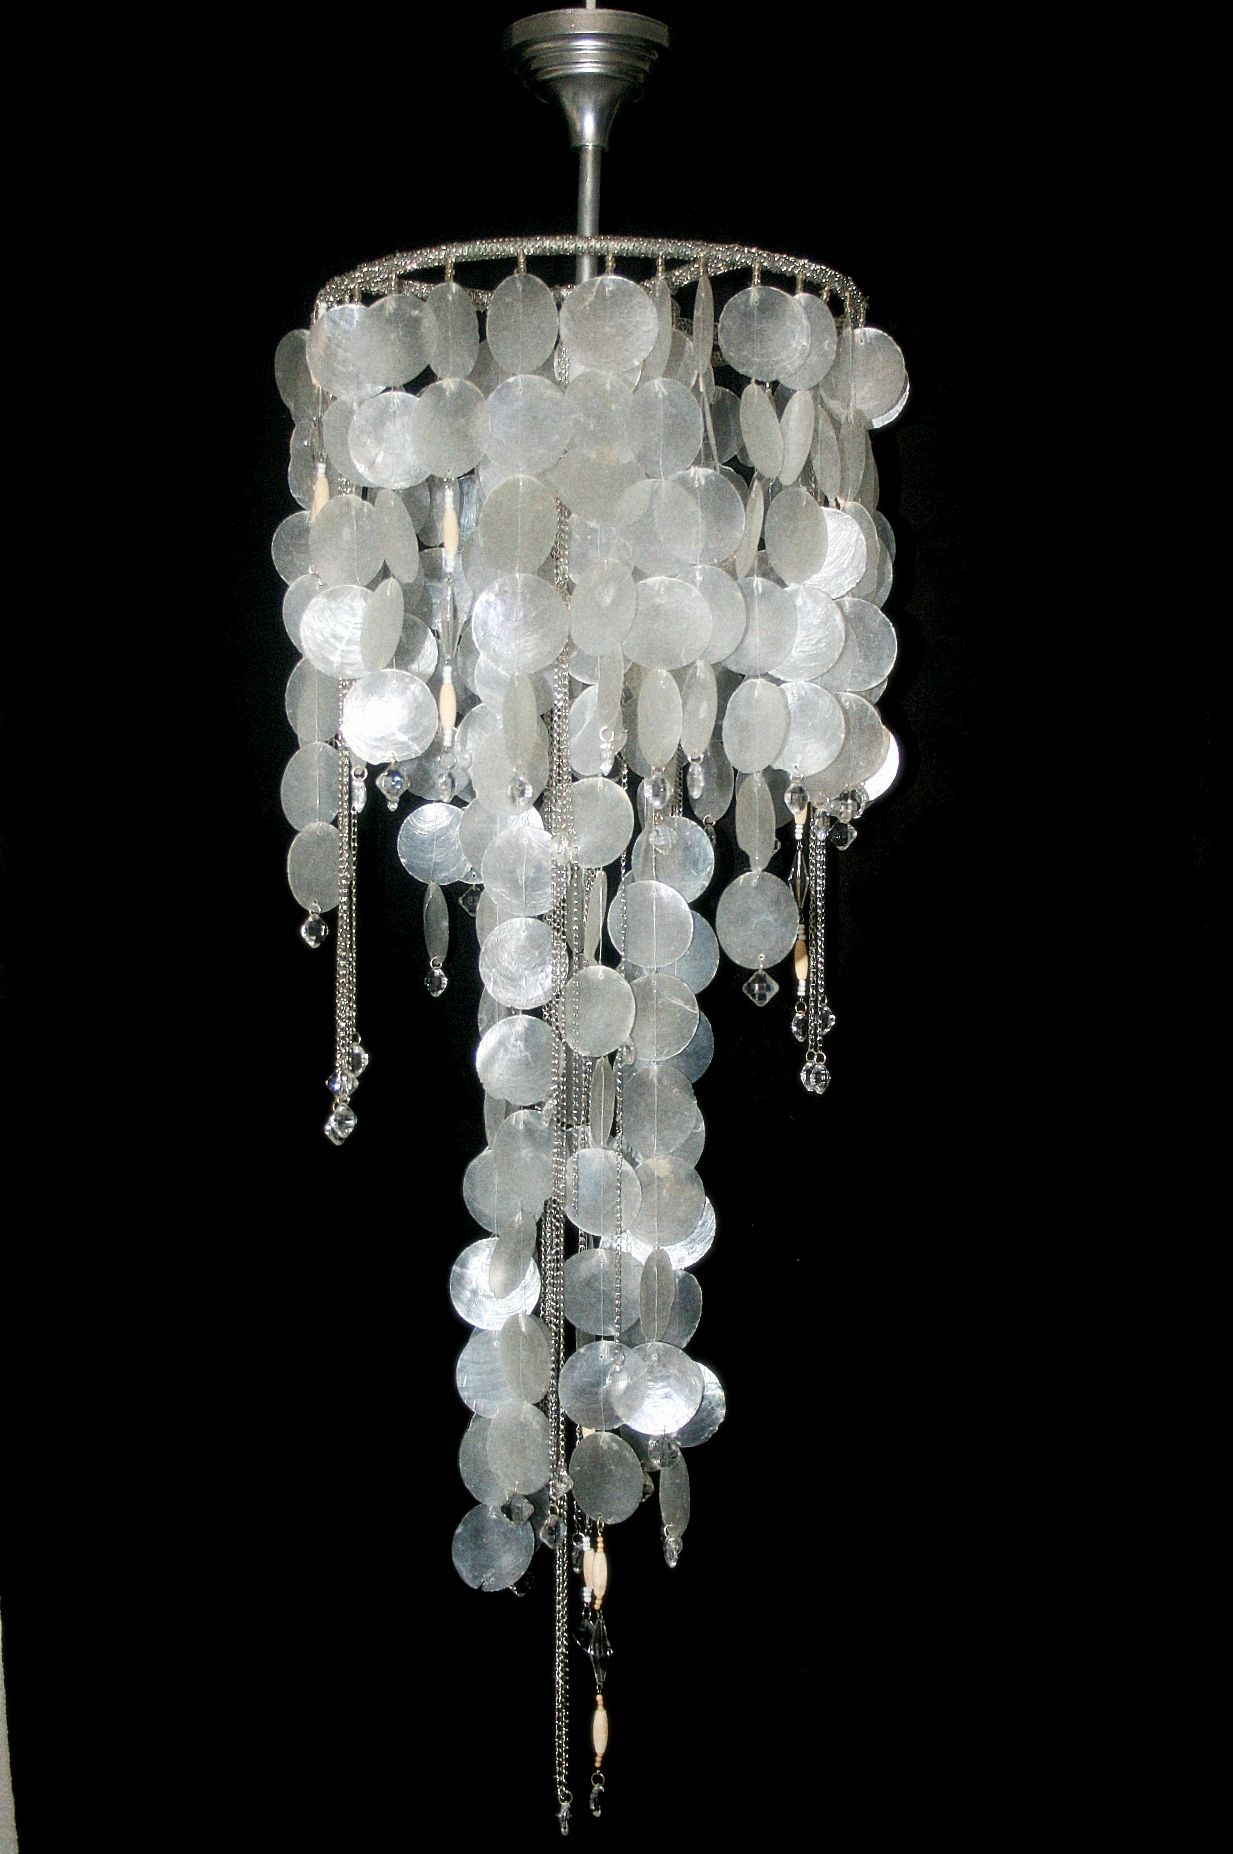 Hand made by exquiiste wallz and design shndelier pinterest chandeliers hand made by exquiiste wallz and design arubaitofo Image collections